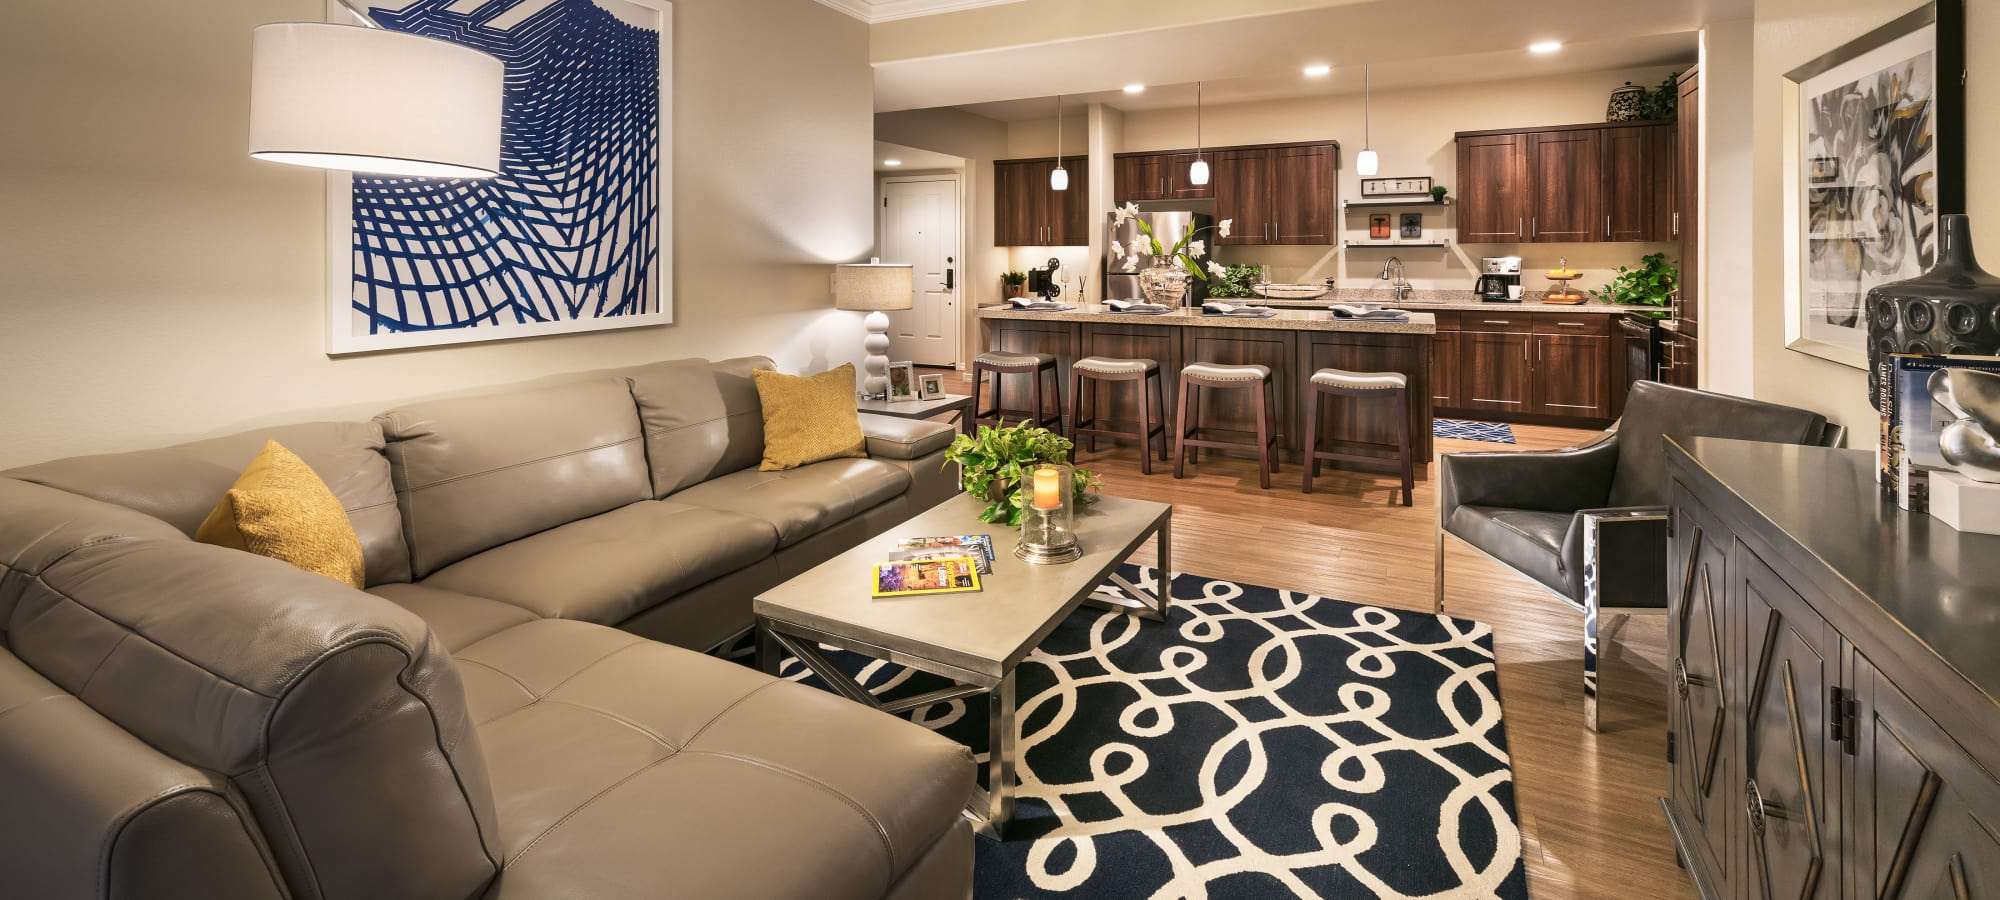 Model living room and kitchen at San Sonoma in Tempe, Arizona